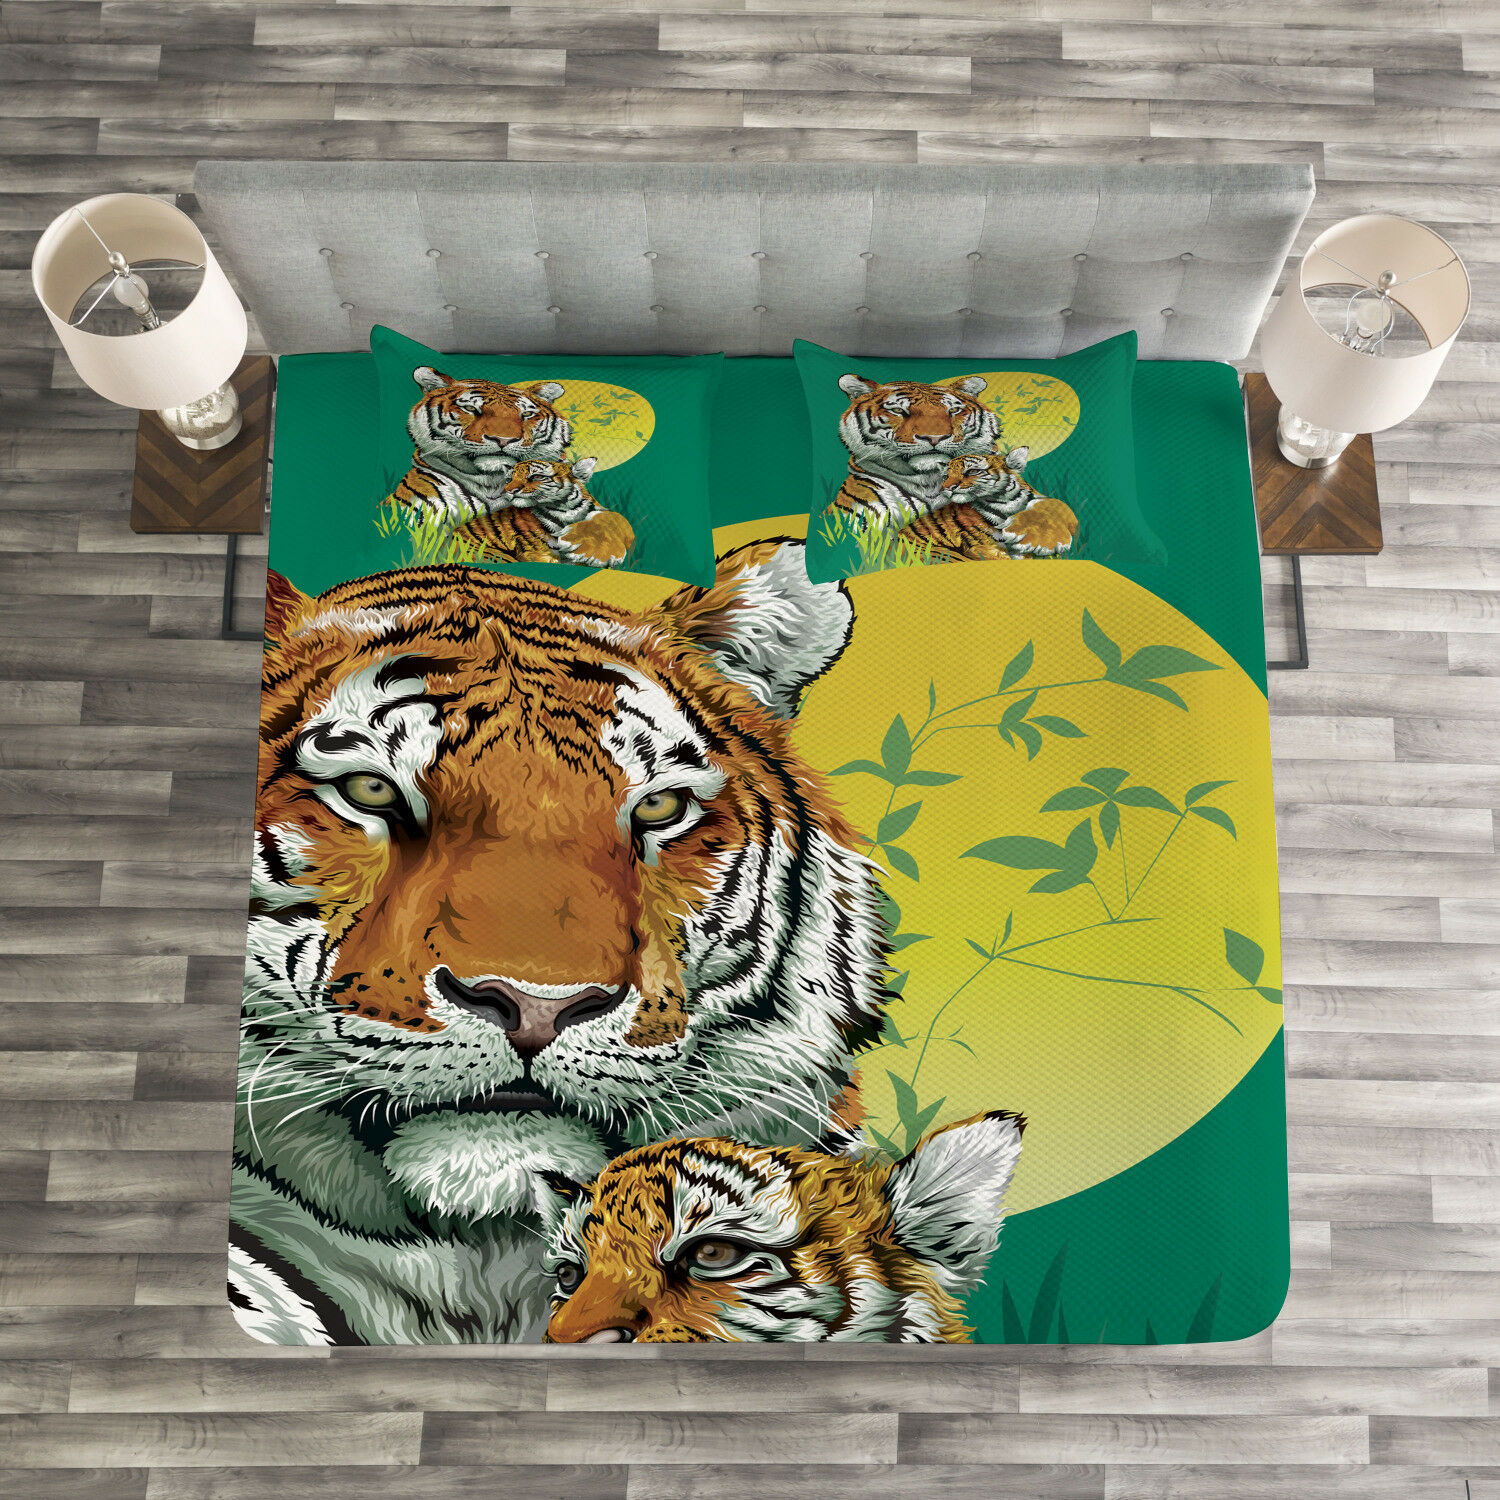 Safari Quilted Bedspread & Pillow Shams Set, Tiger Family in Jungle Print